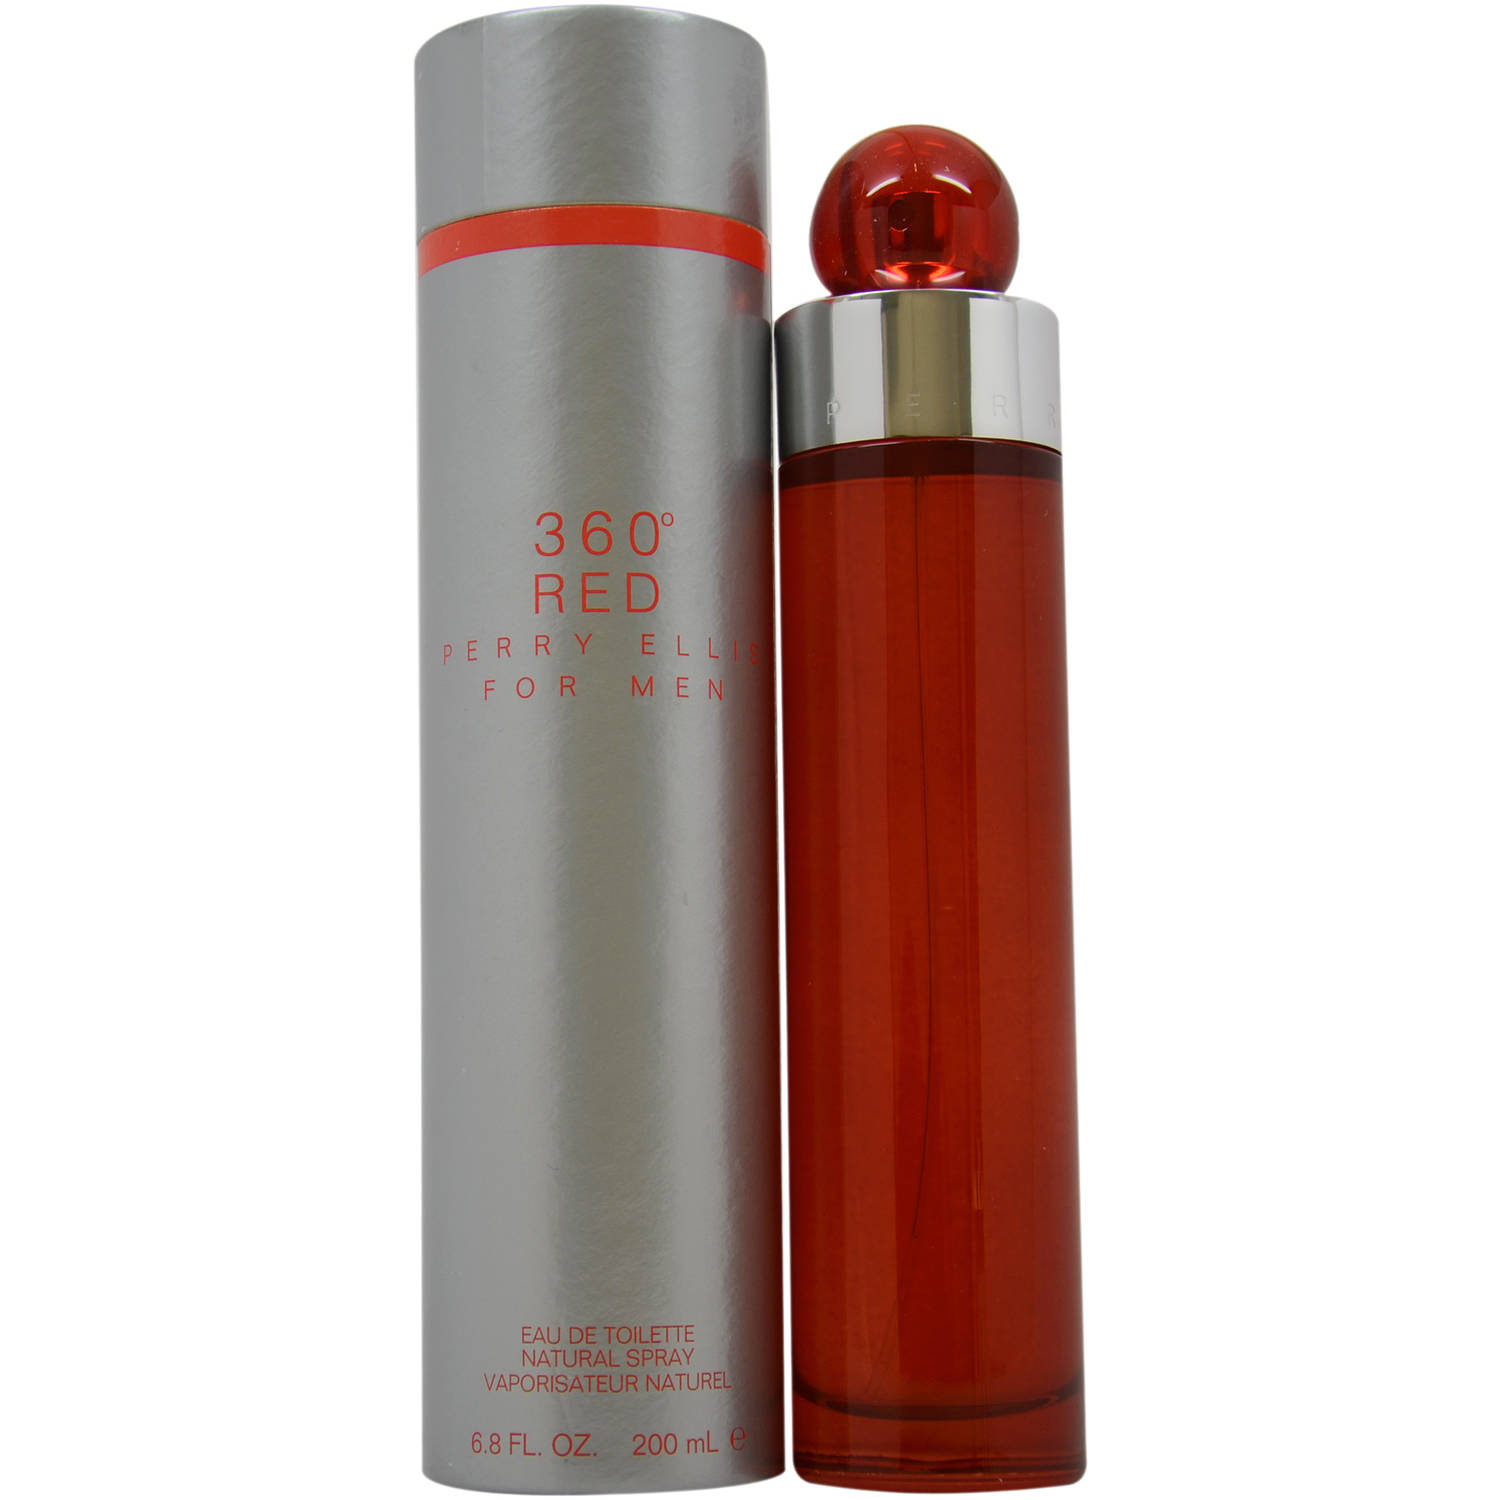 360 Red by Perry Ellis for Men EDT Spray, 6.8 oz